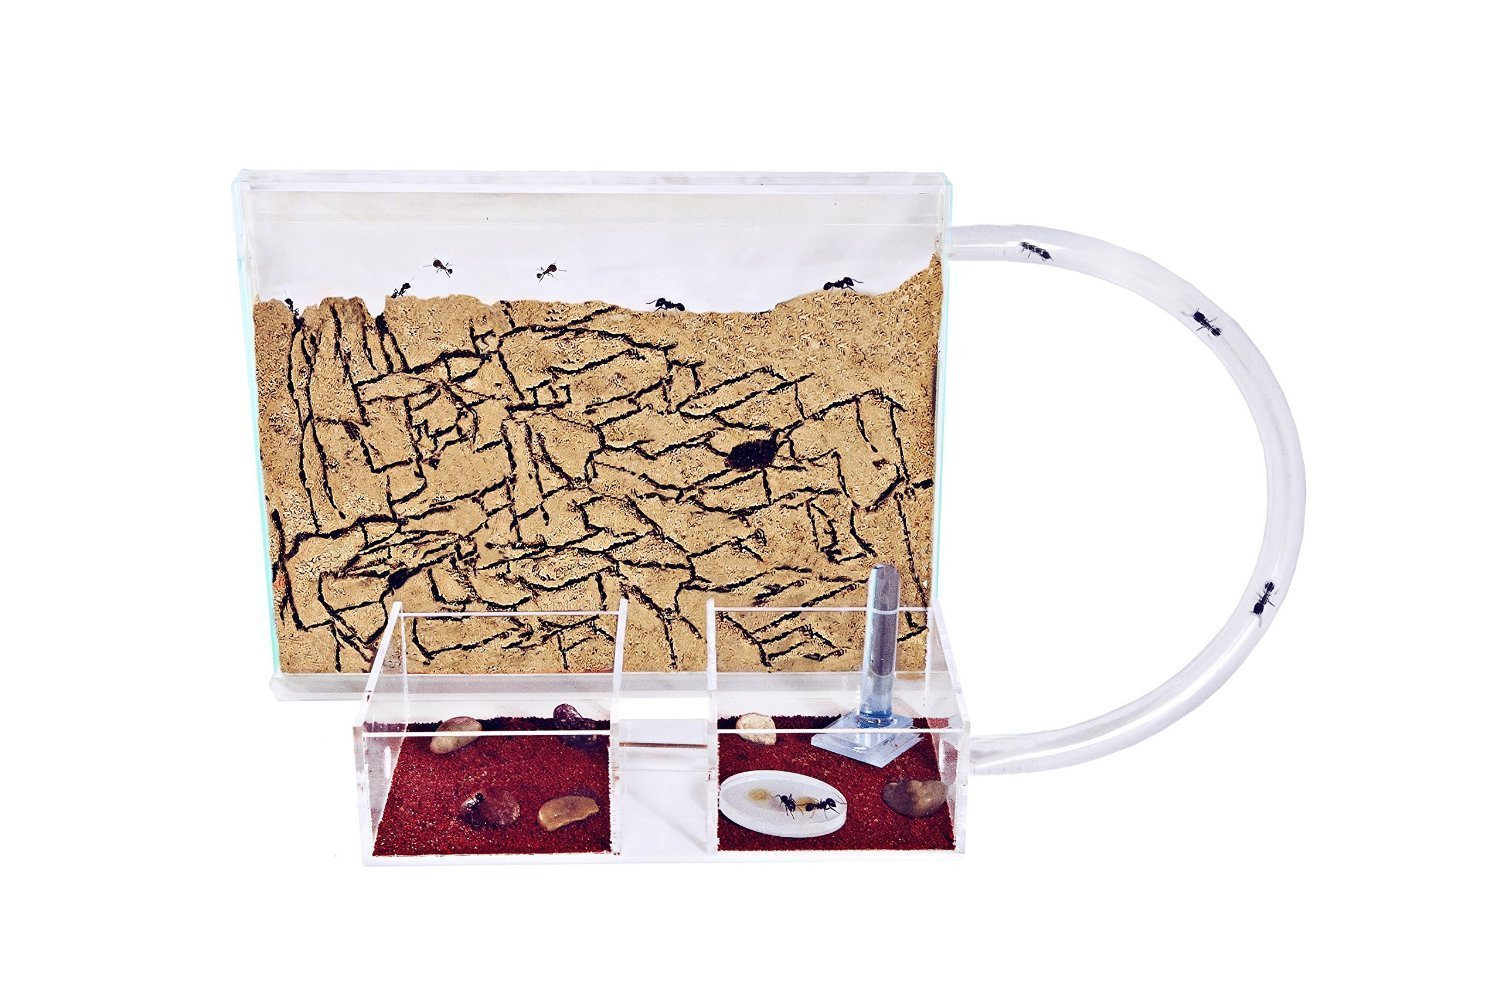 Sand Ant Farm Medium (Anthill, Formicarium, Educational, Ants) by anthouse